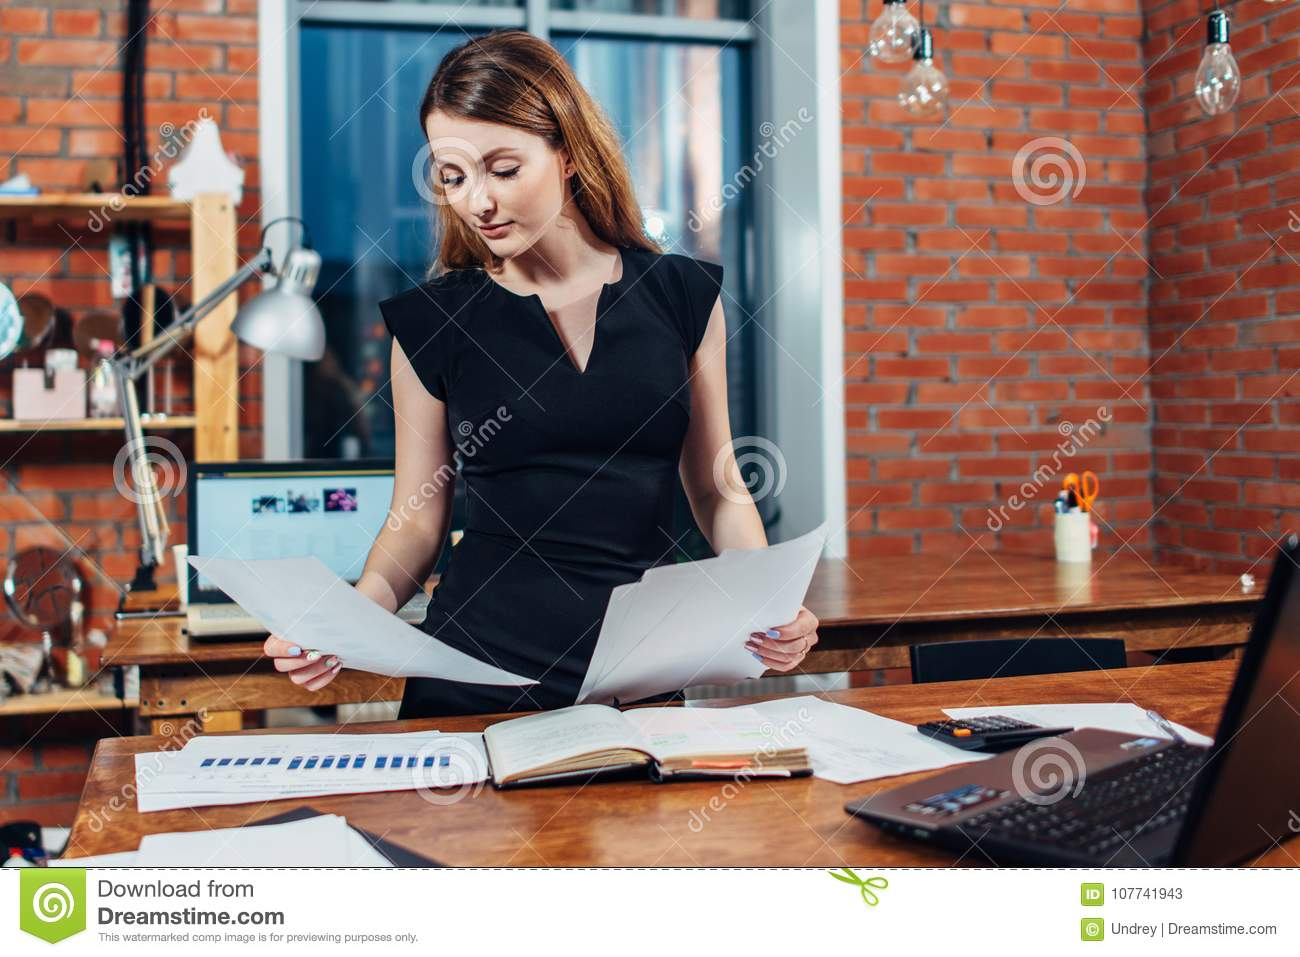 Download Serious Woman Reading Papers Studying Resumes Standing At Work Desk In Stylish Office Stock Image - Image of freelance, examining: 107741943